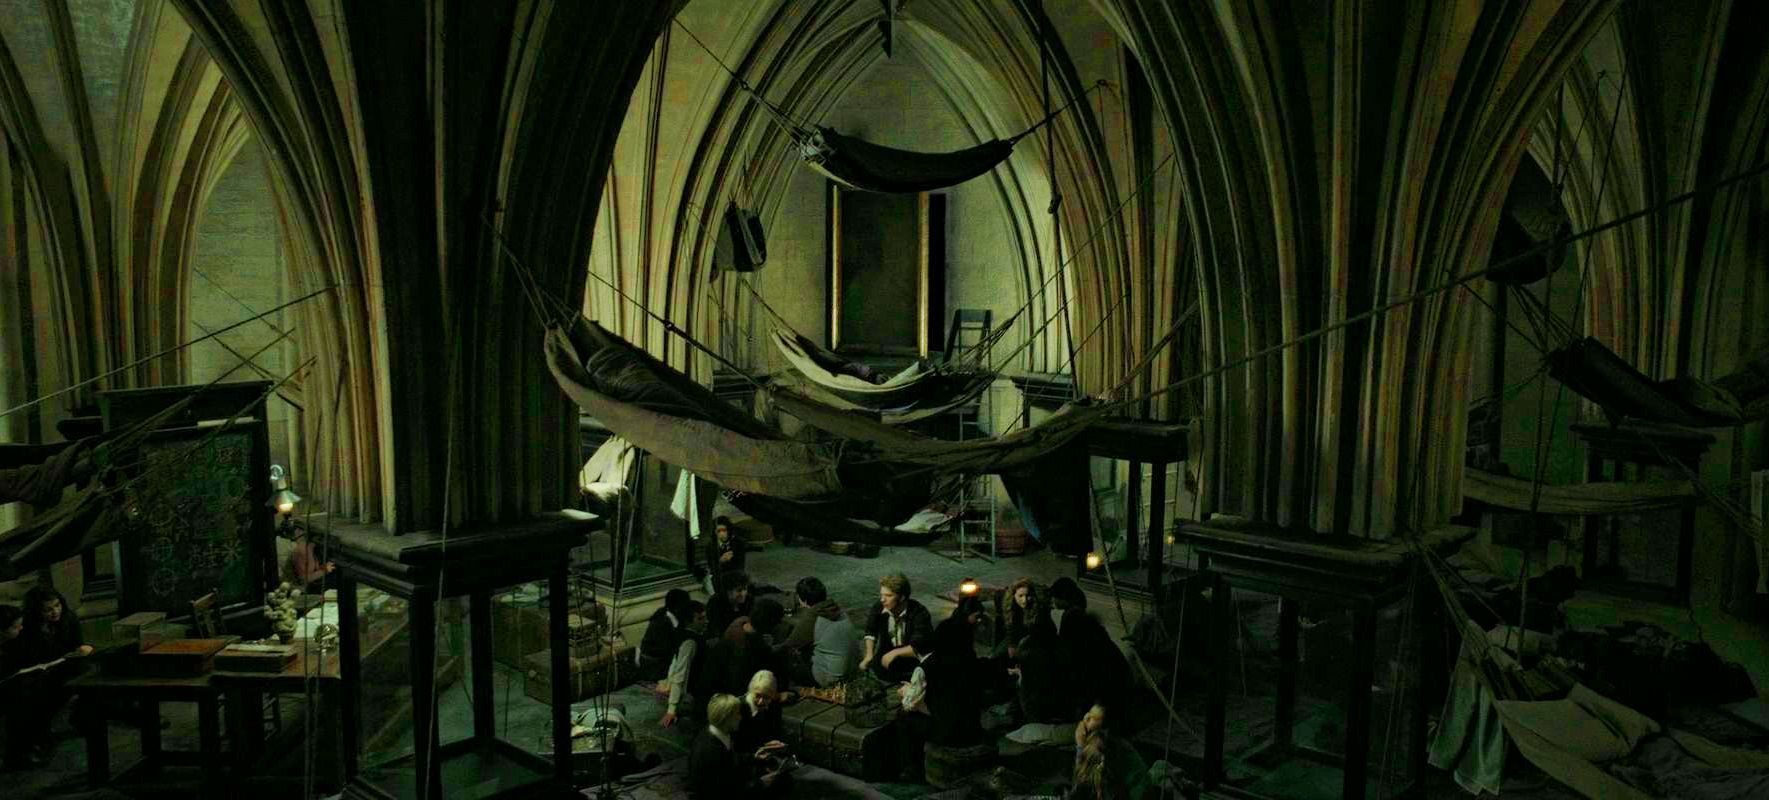 Secrets About The Hogwarts Castle Thethings